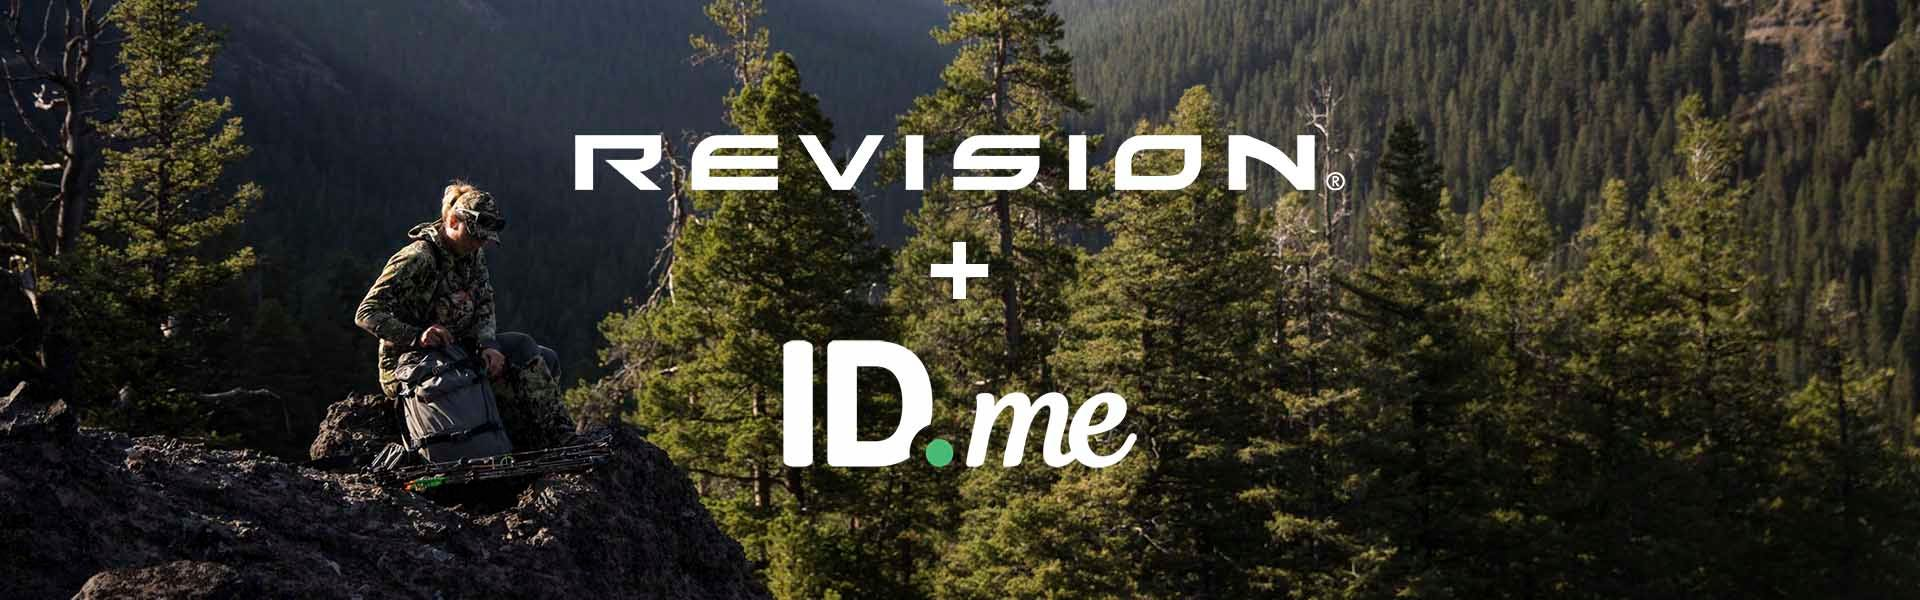 Revision and ID.me